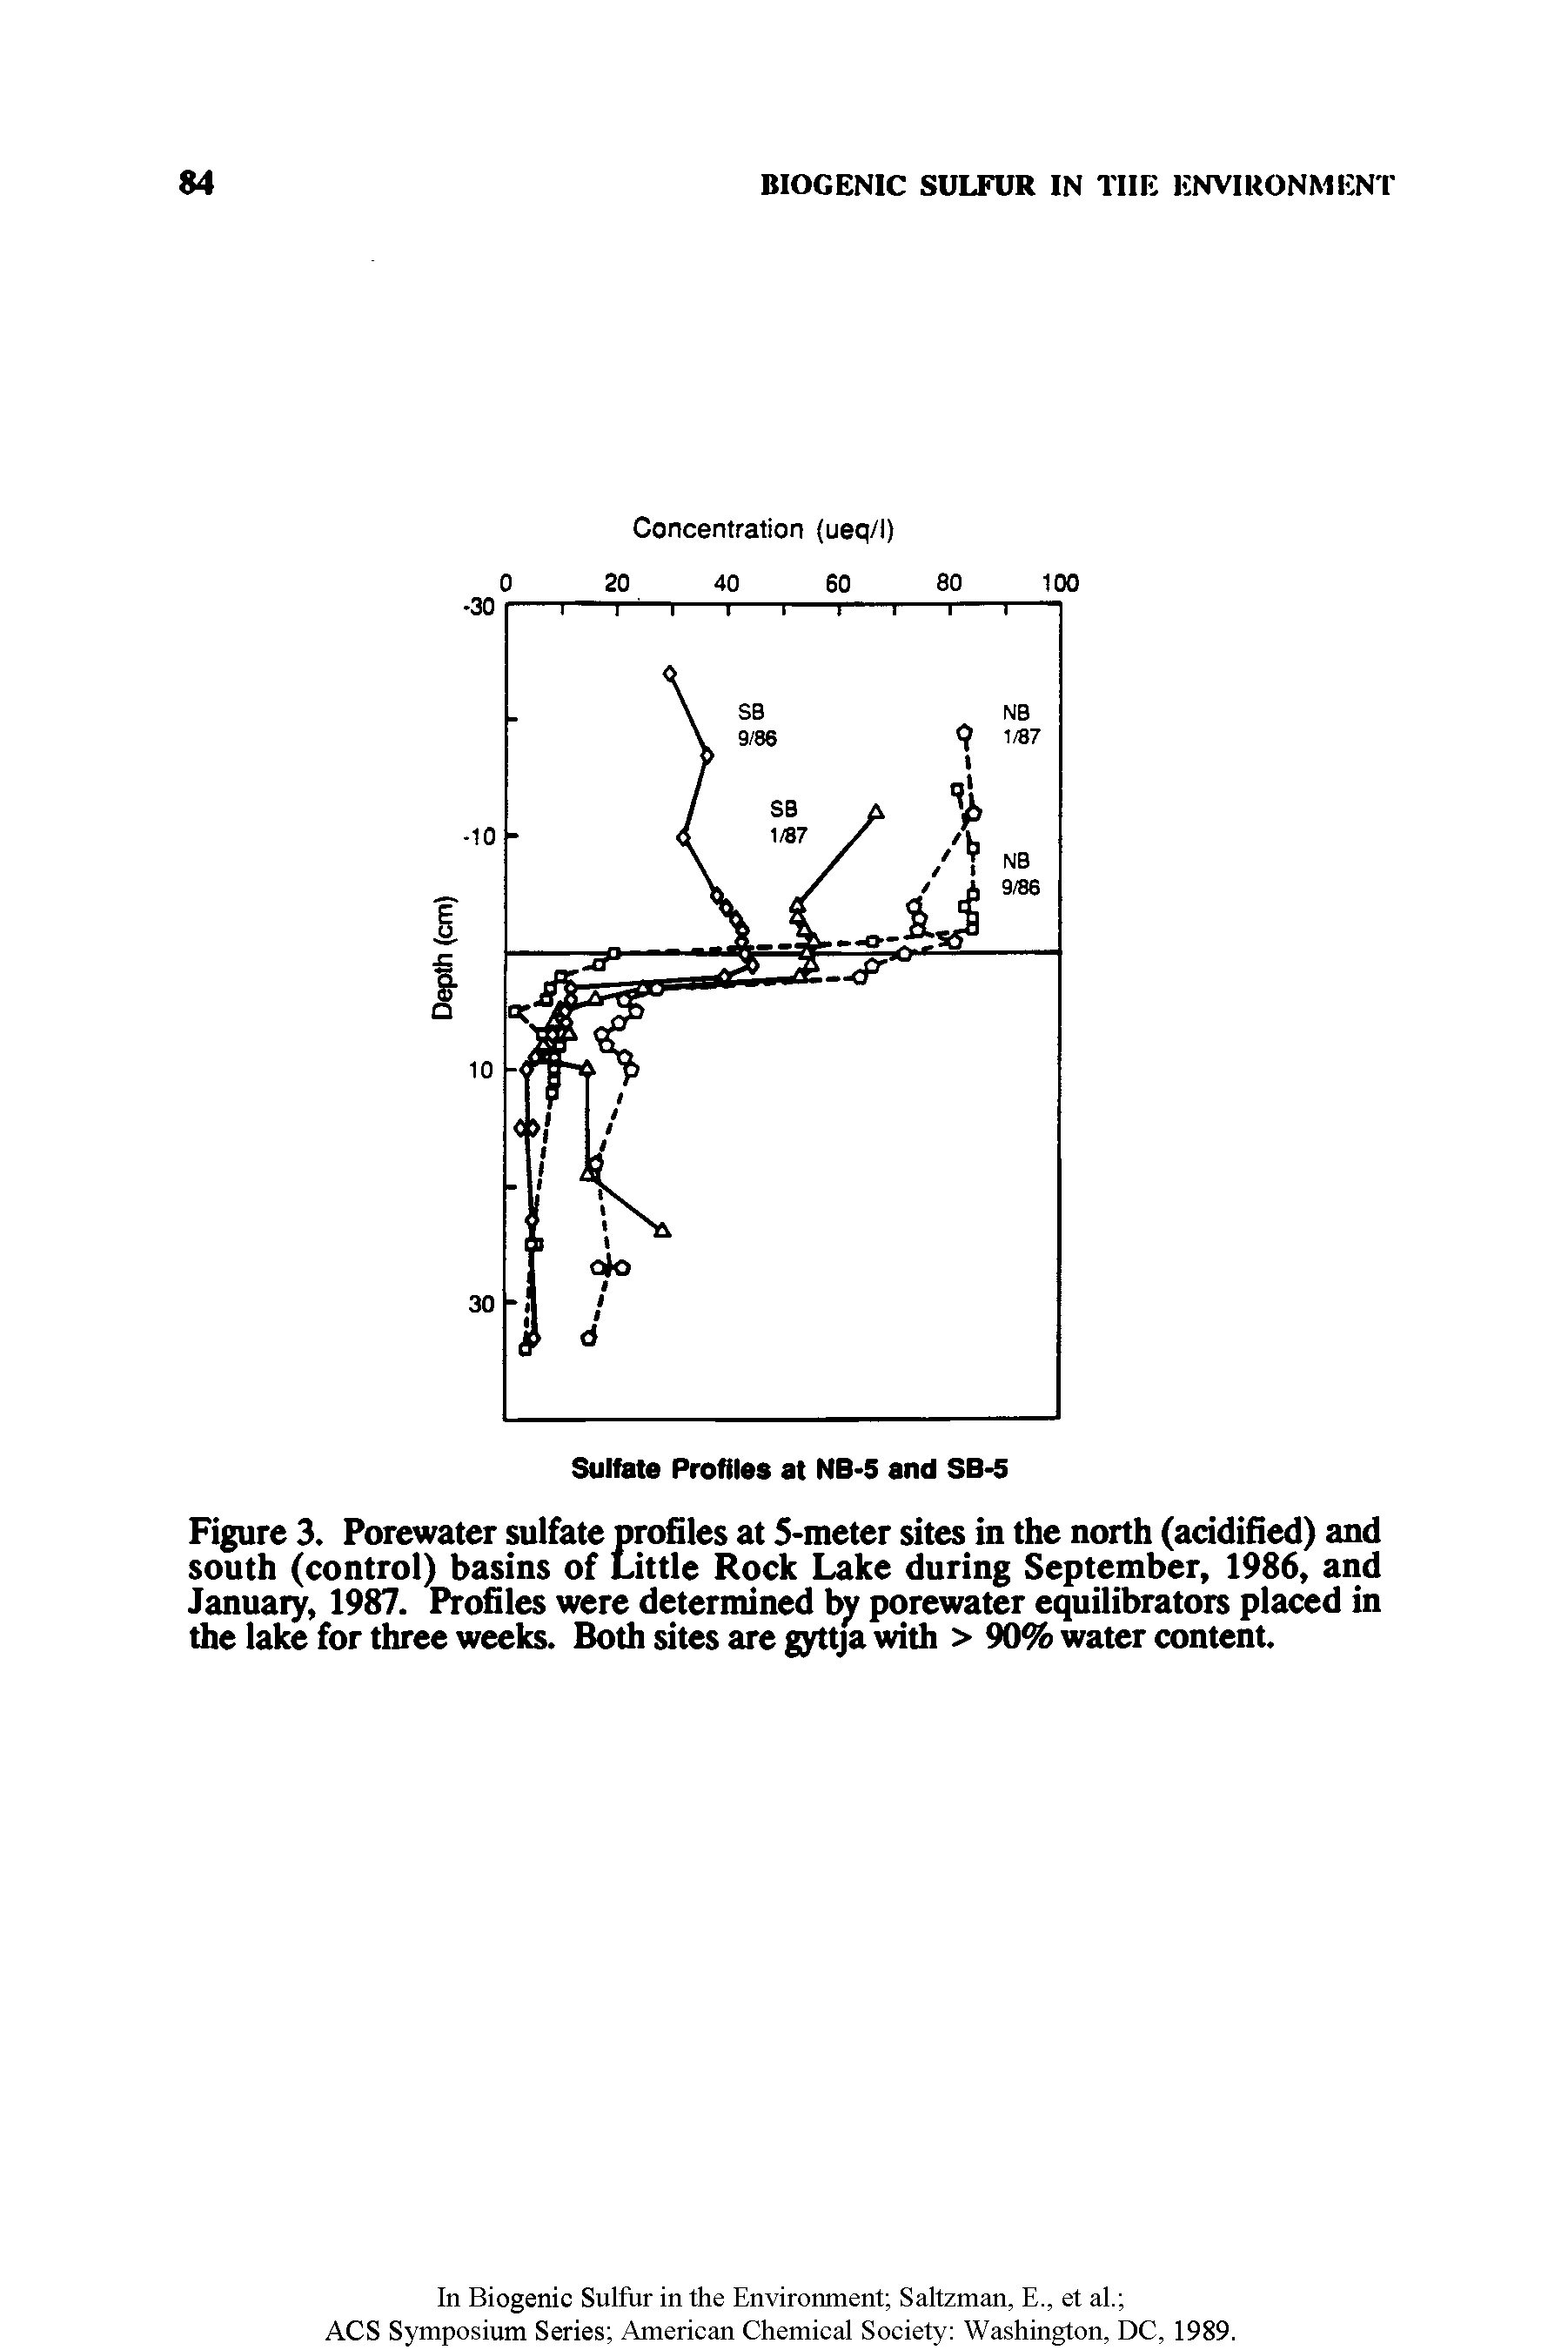 Figure 3. Porewater sulfate profiles at 5-meter sites in the north (acidified) and south (control) basins of Little Rock Lake during September, 1986, and January, 1987. Profiles were determined by porewater equilibrators placed in the lake for three weeks. Both sites are gyttja with > 90% water content.